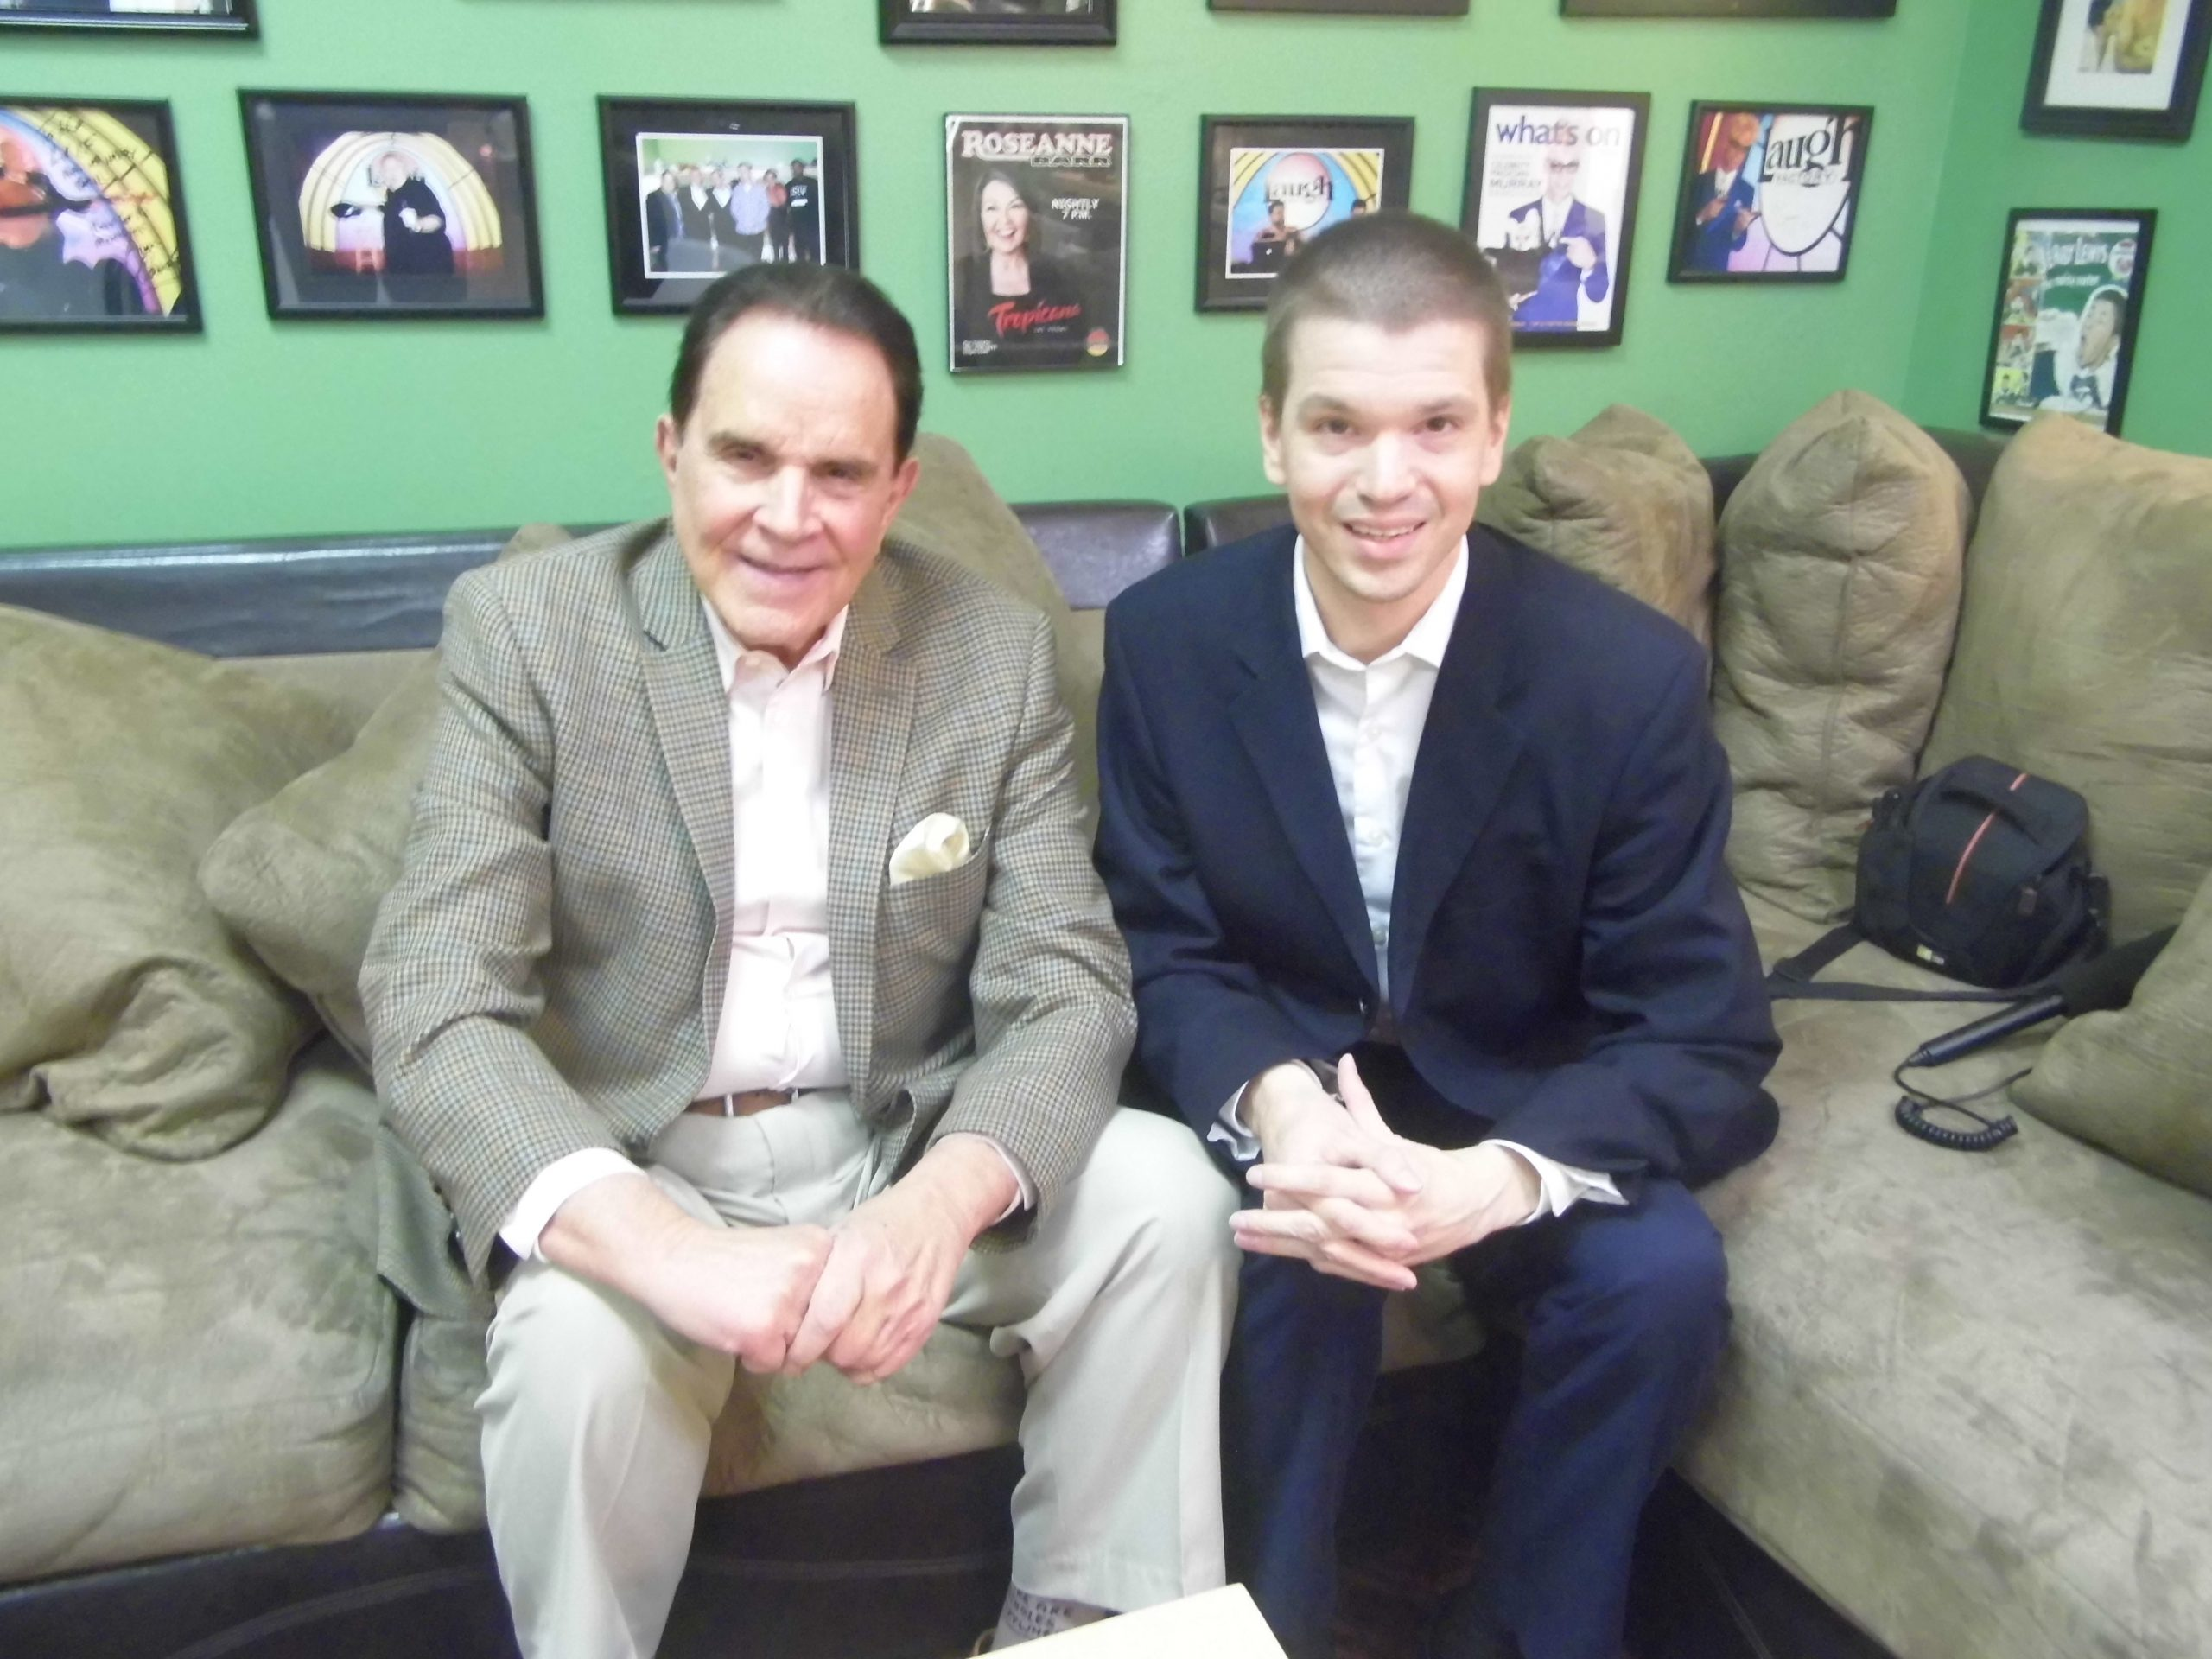 Chris Yandek, Rich Little Turns 80, Rich Little at 80, Chris Yandek Rich Little 2018, Rich Little Tropicana Hotel and Casino, Rich Little Las Vegas, Rich Little Laugh Factory, Chris Yandek Rich Little,